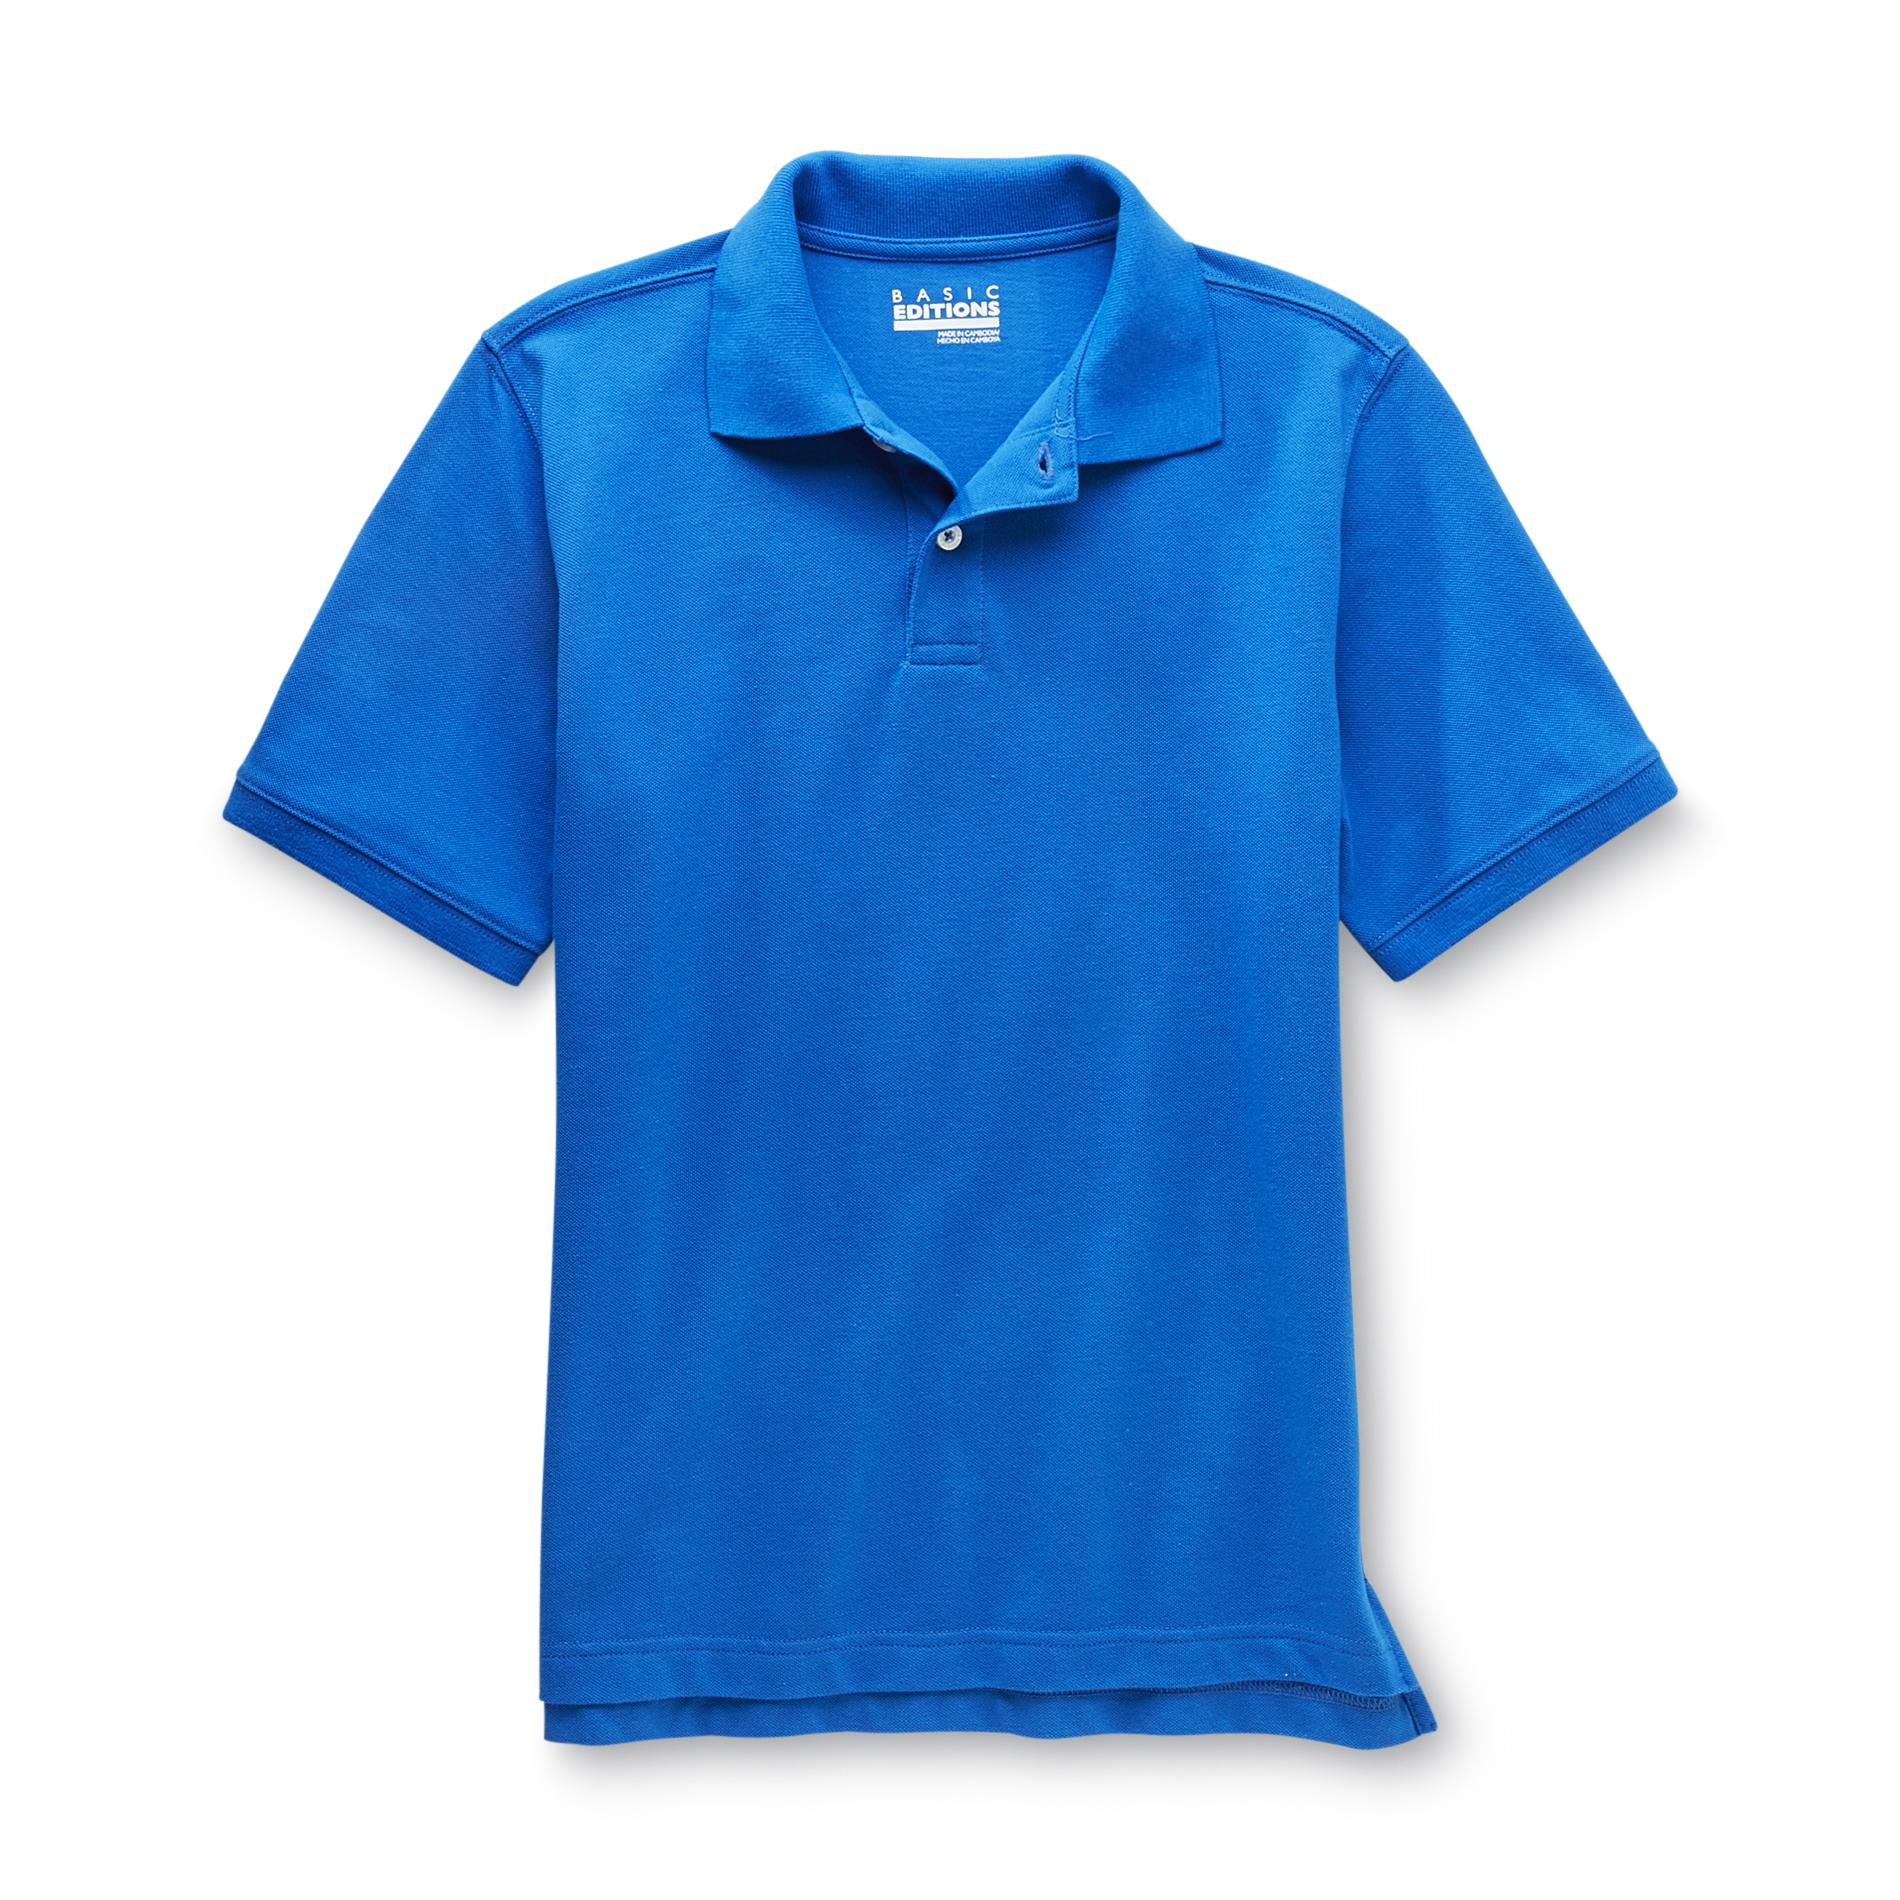 Boy's Polo Shirt - Solid